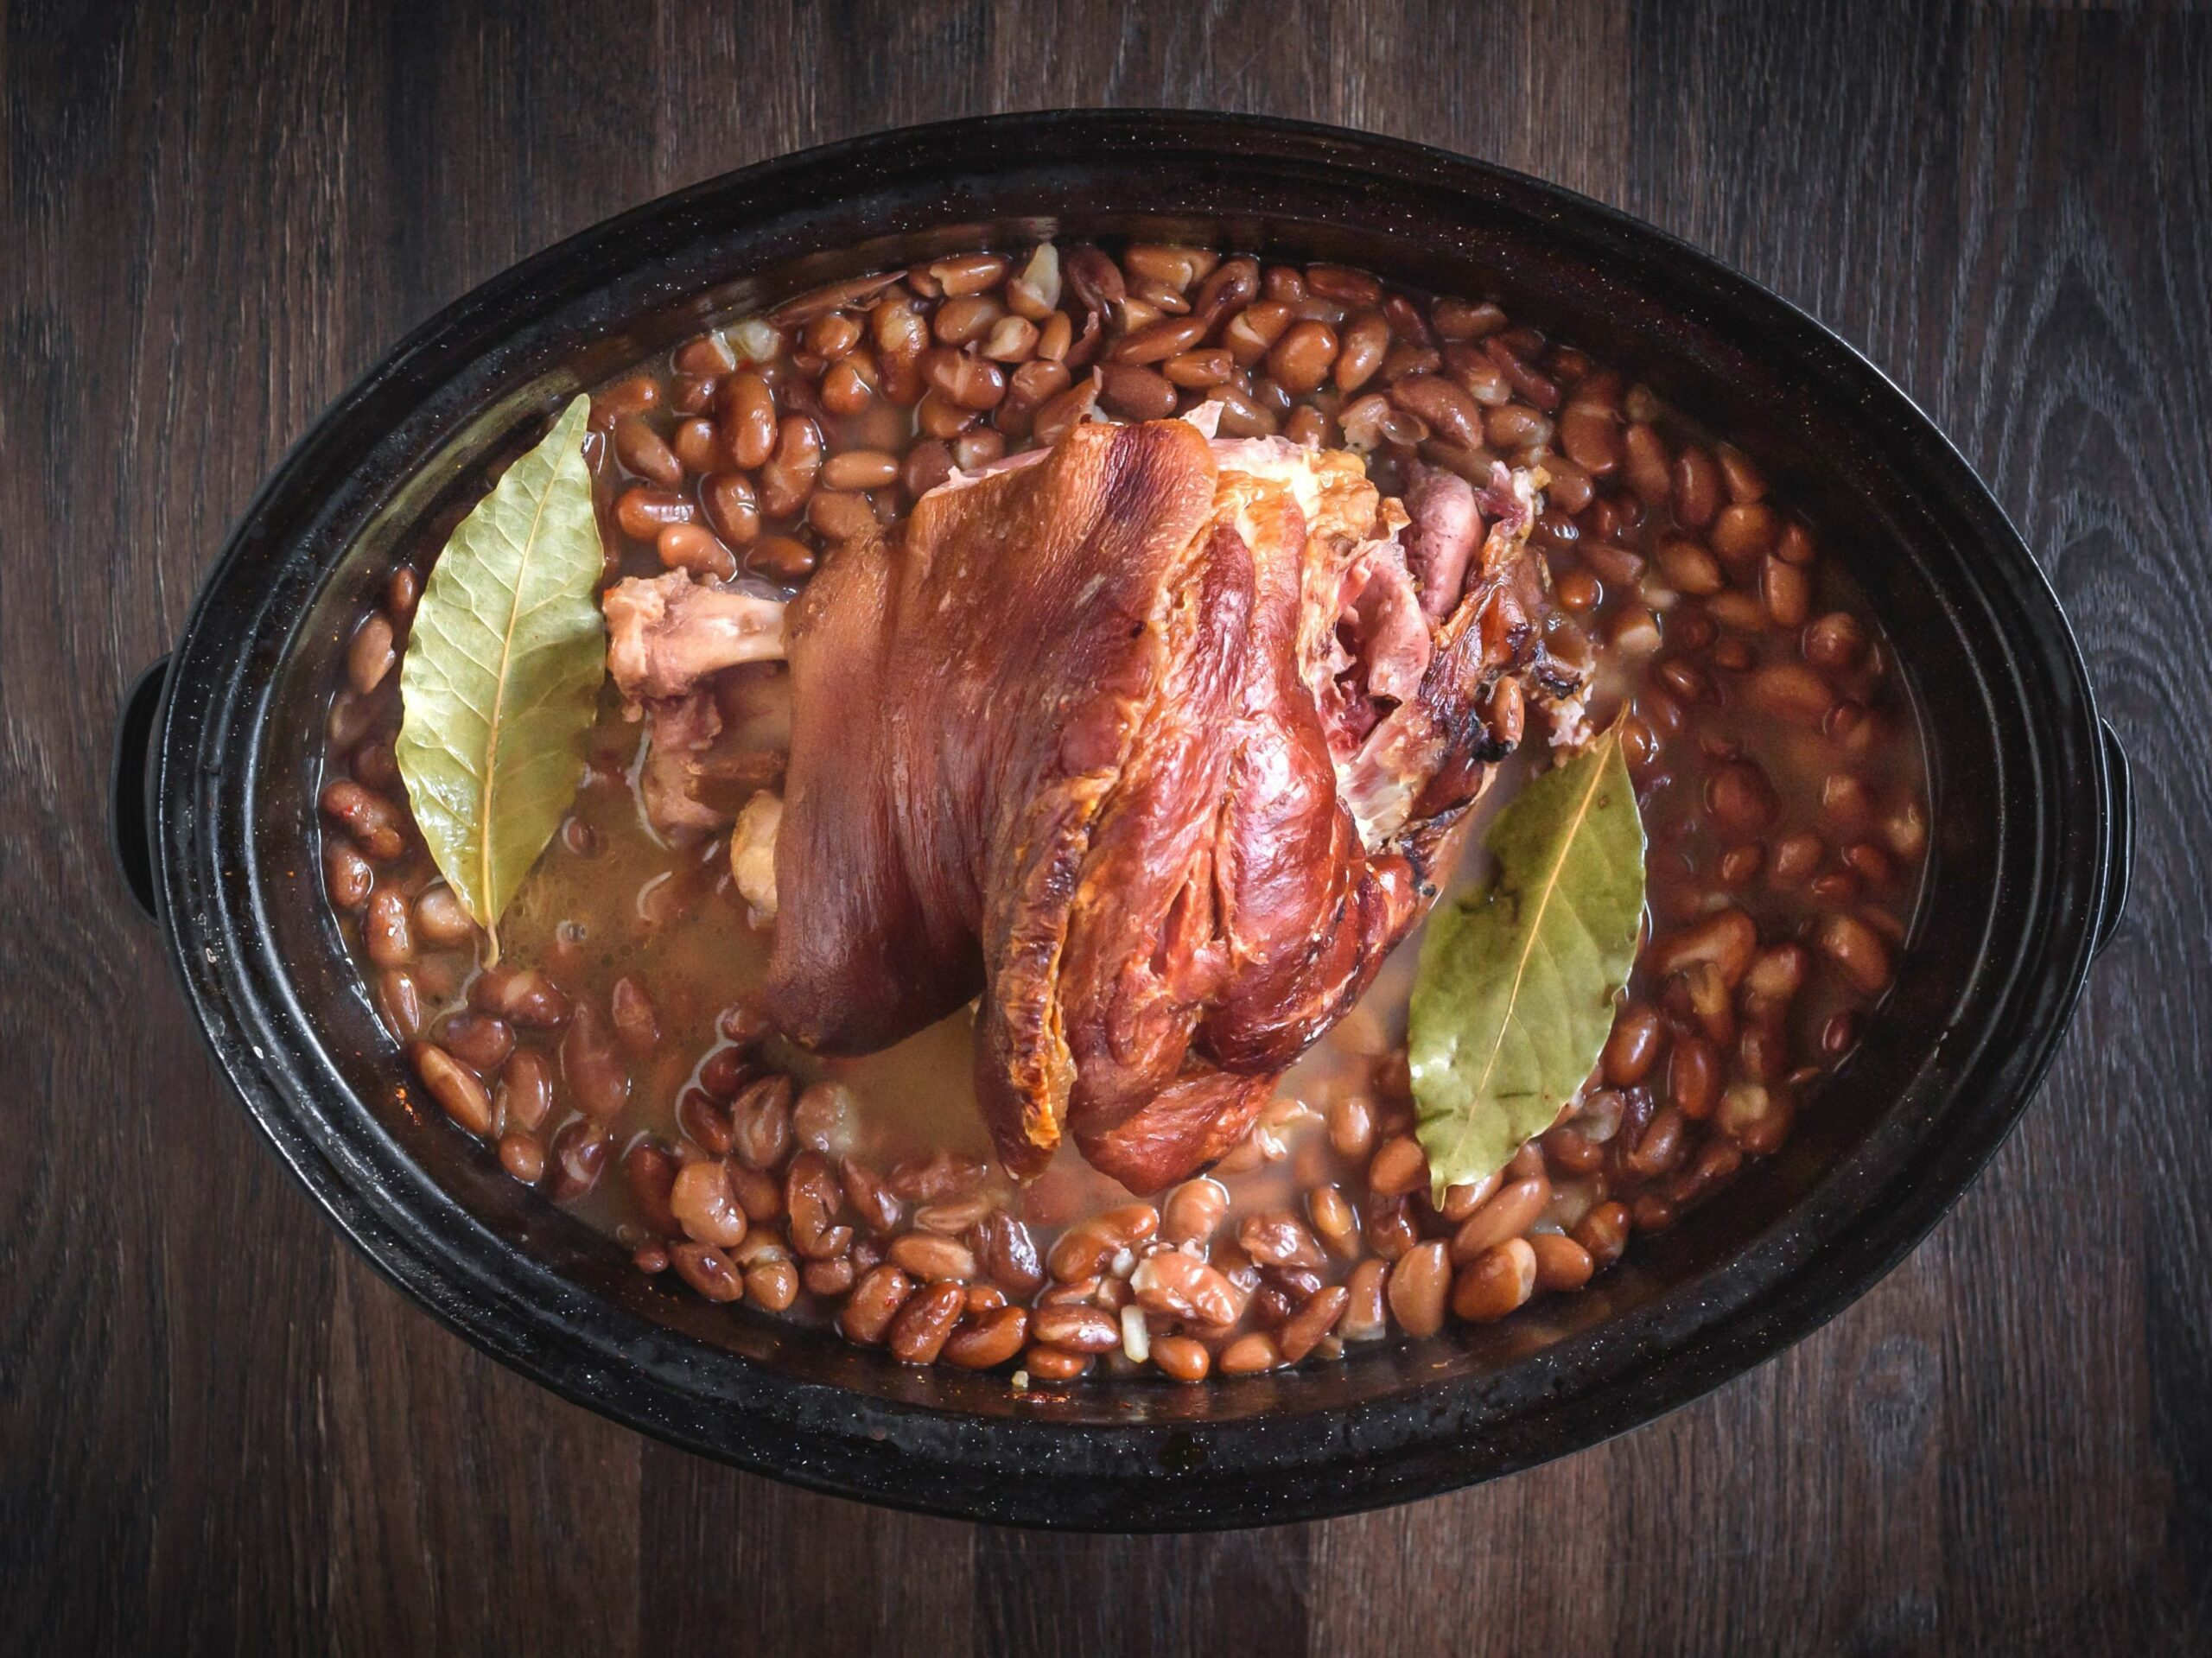 Southern Crock Pot Pinto Beans With Ham Hocks - Recipes Pork Hocks Slow Cooker